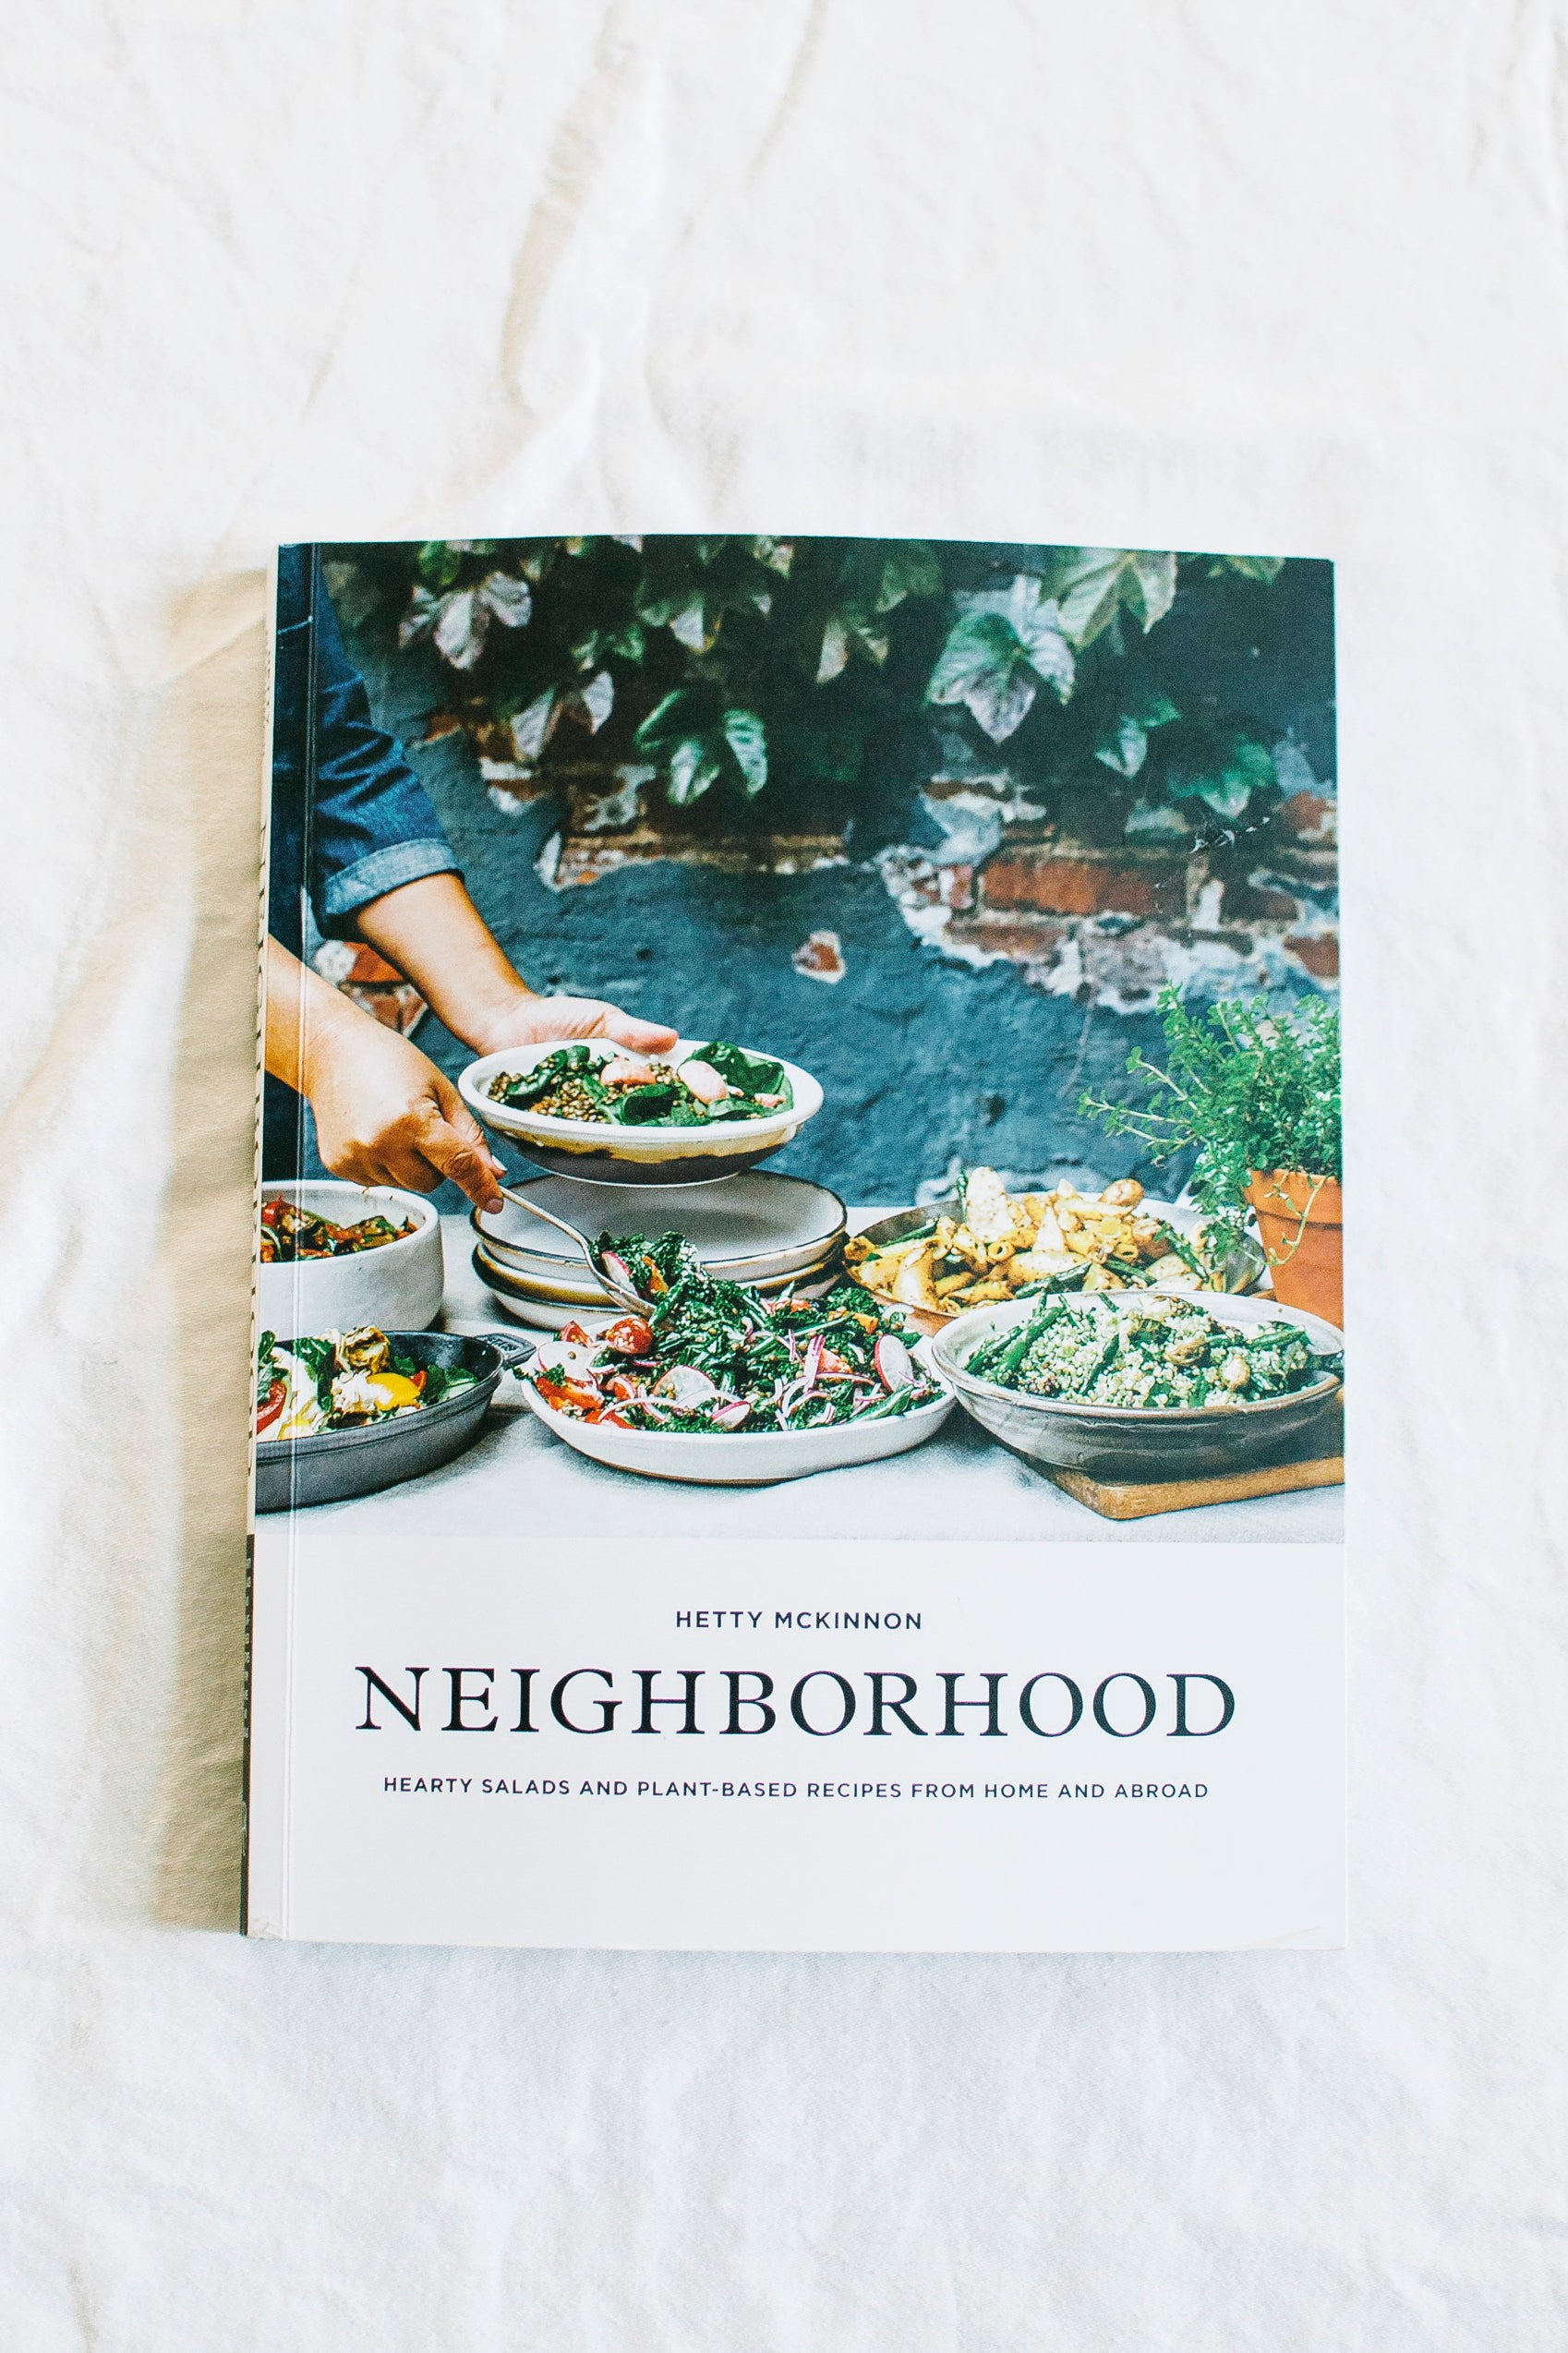 book review: neighborhood by hetty mckinnon